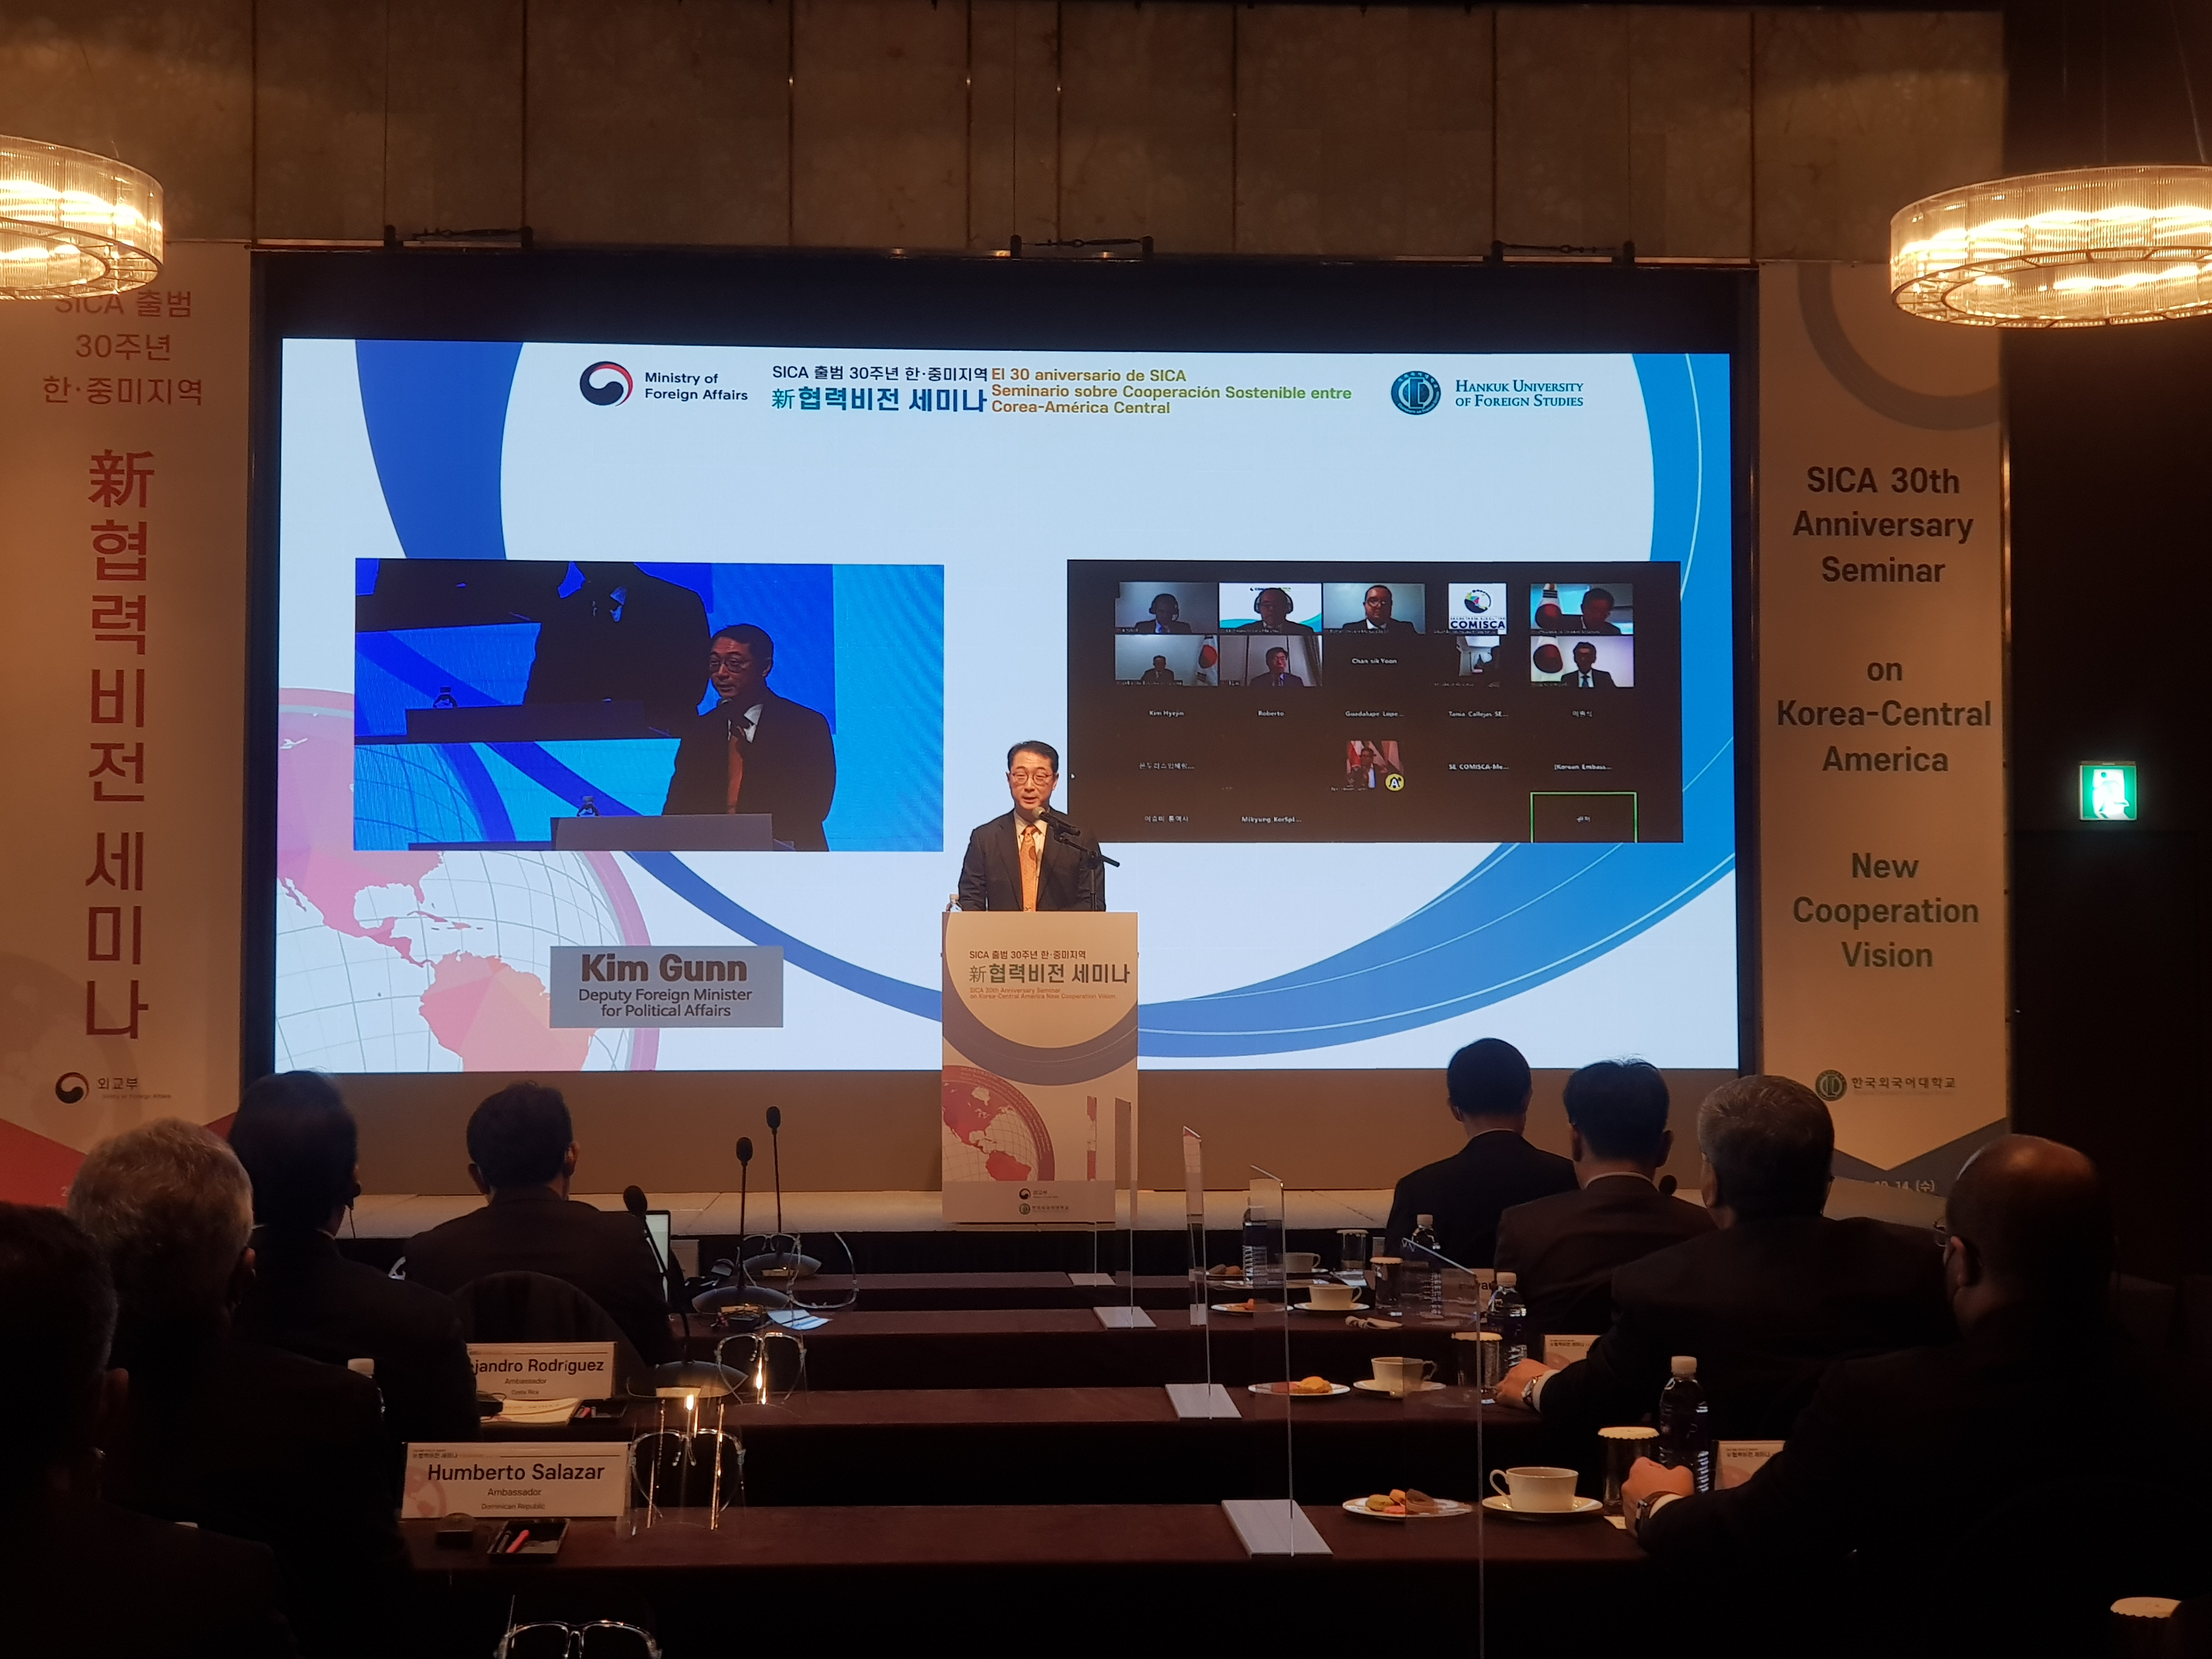 SICA 30th Anniversary Seminar on Korea-Central America New Cooperation Vision Takes Place